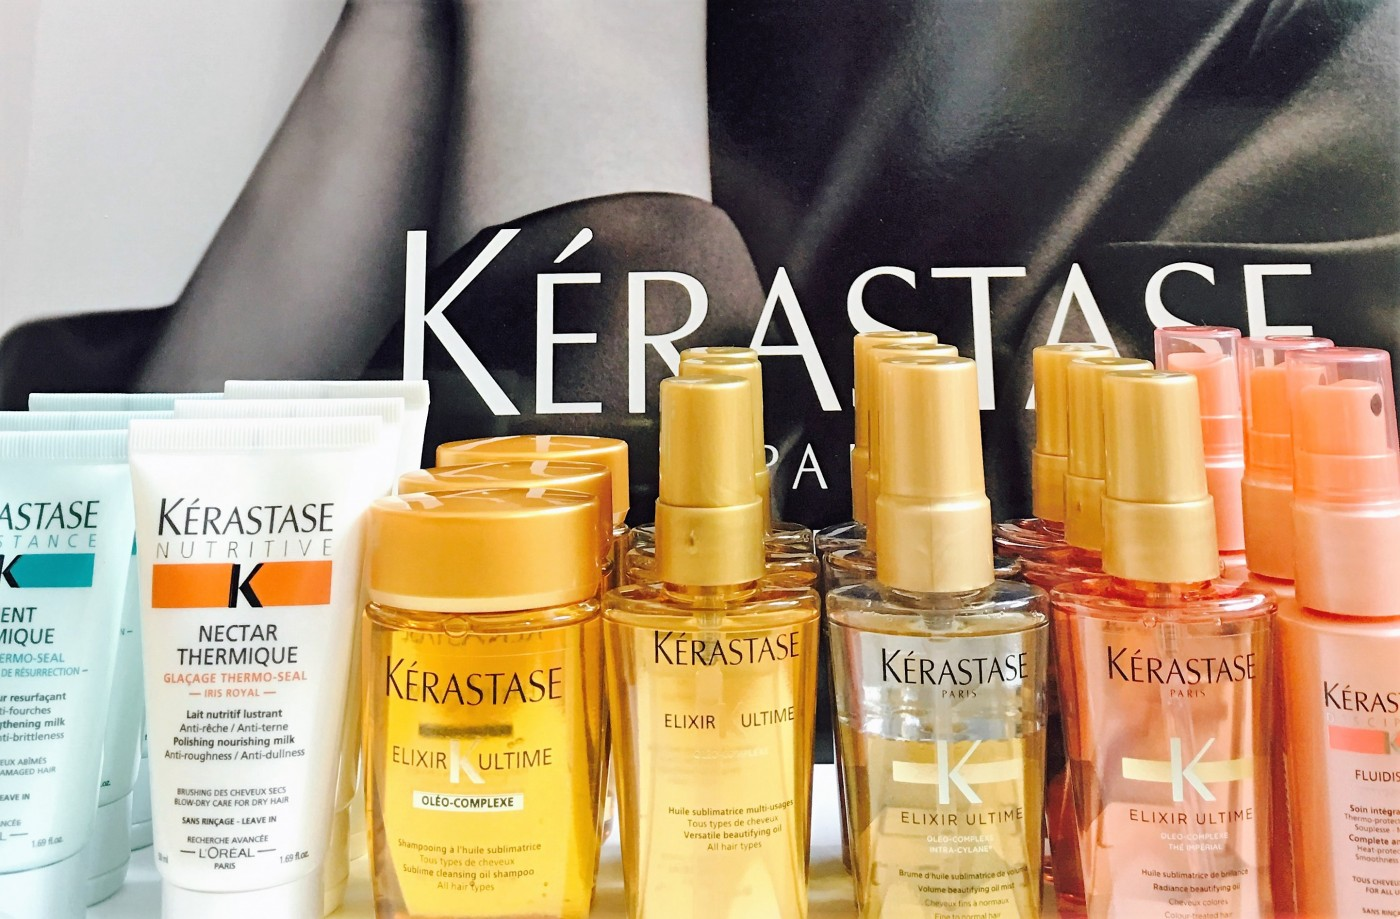 Kerastase Travel Size Products Uk